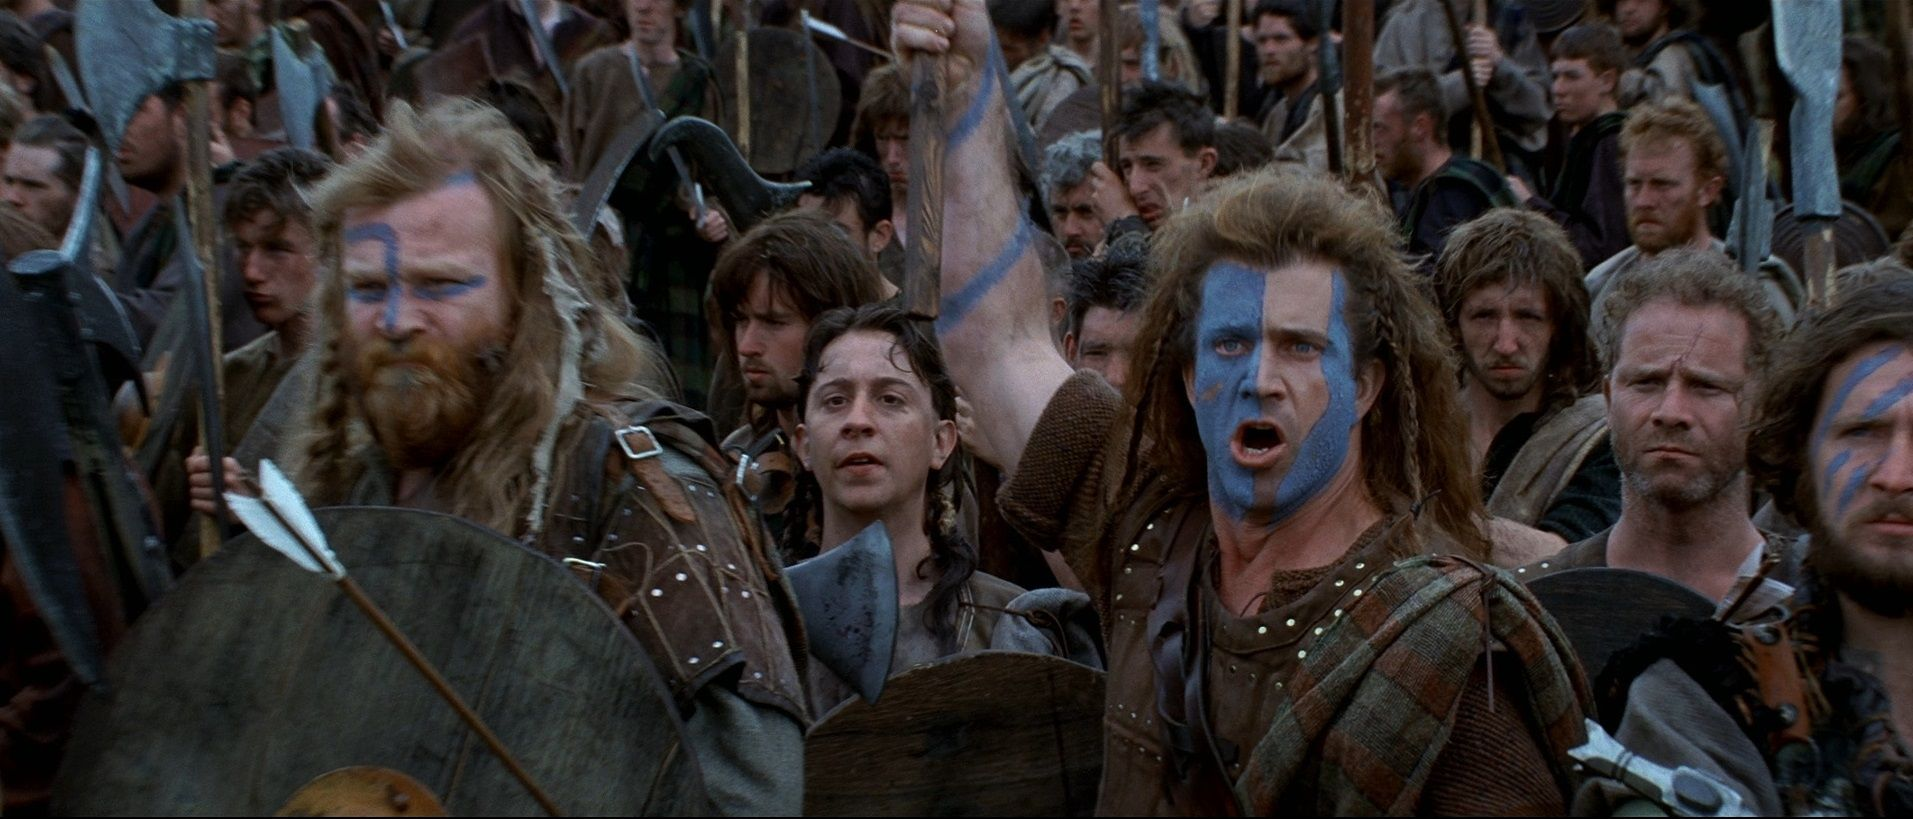 Scene from Braveheart